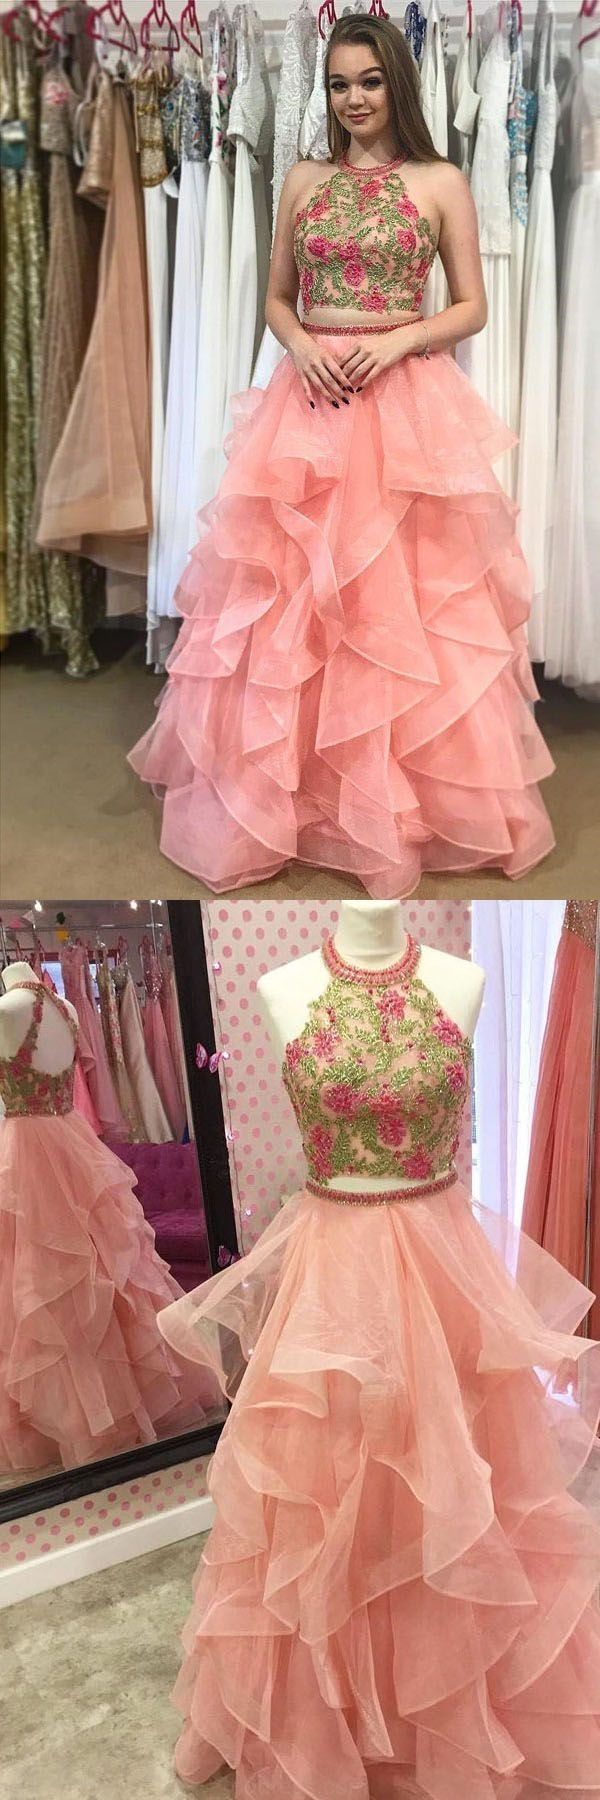 Outlet nice prom dresses two piece round neck tiered pink open